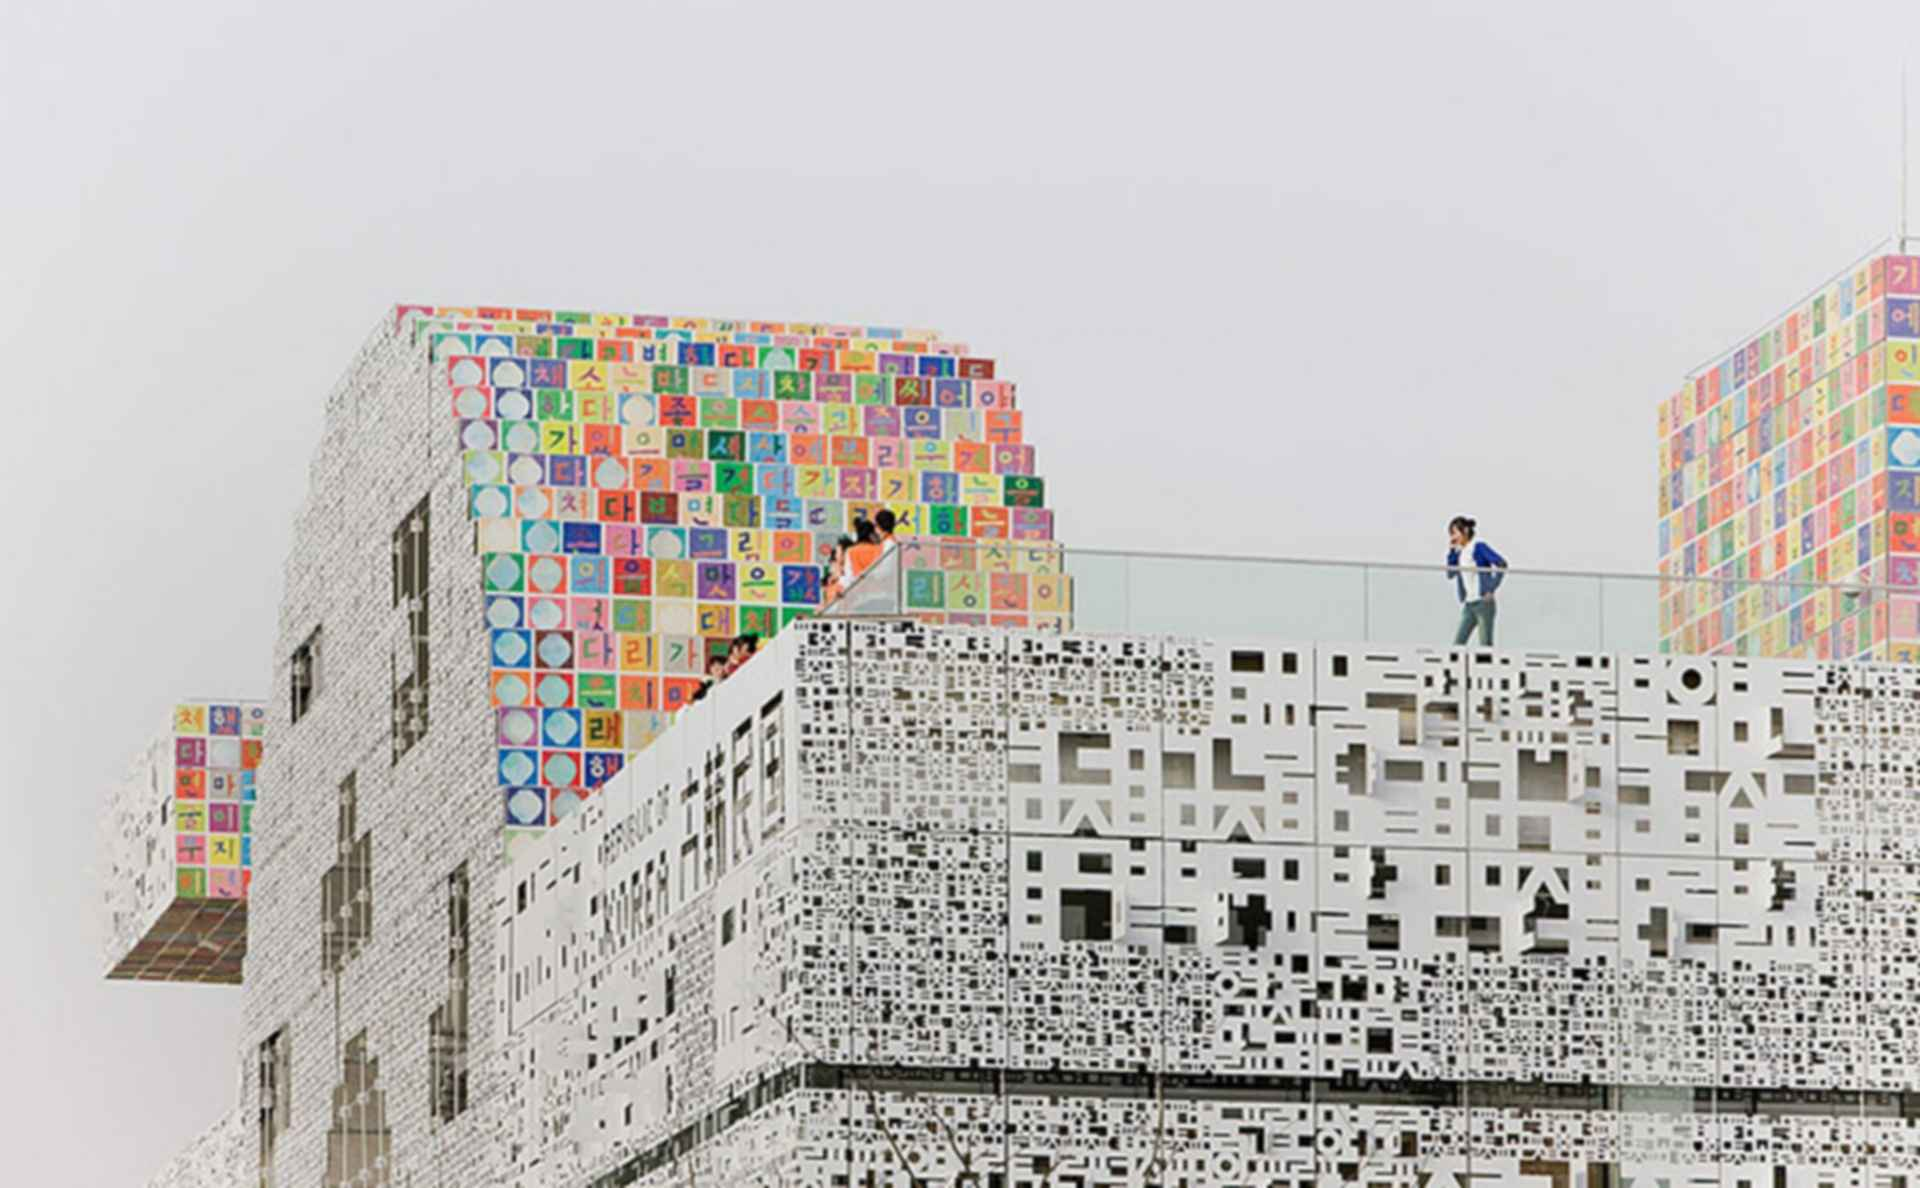 The Korean Pavilion at Shanghai World Expo 2010 - Exterior/Rooftop